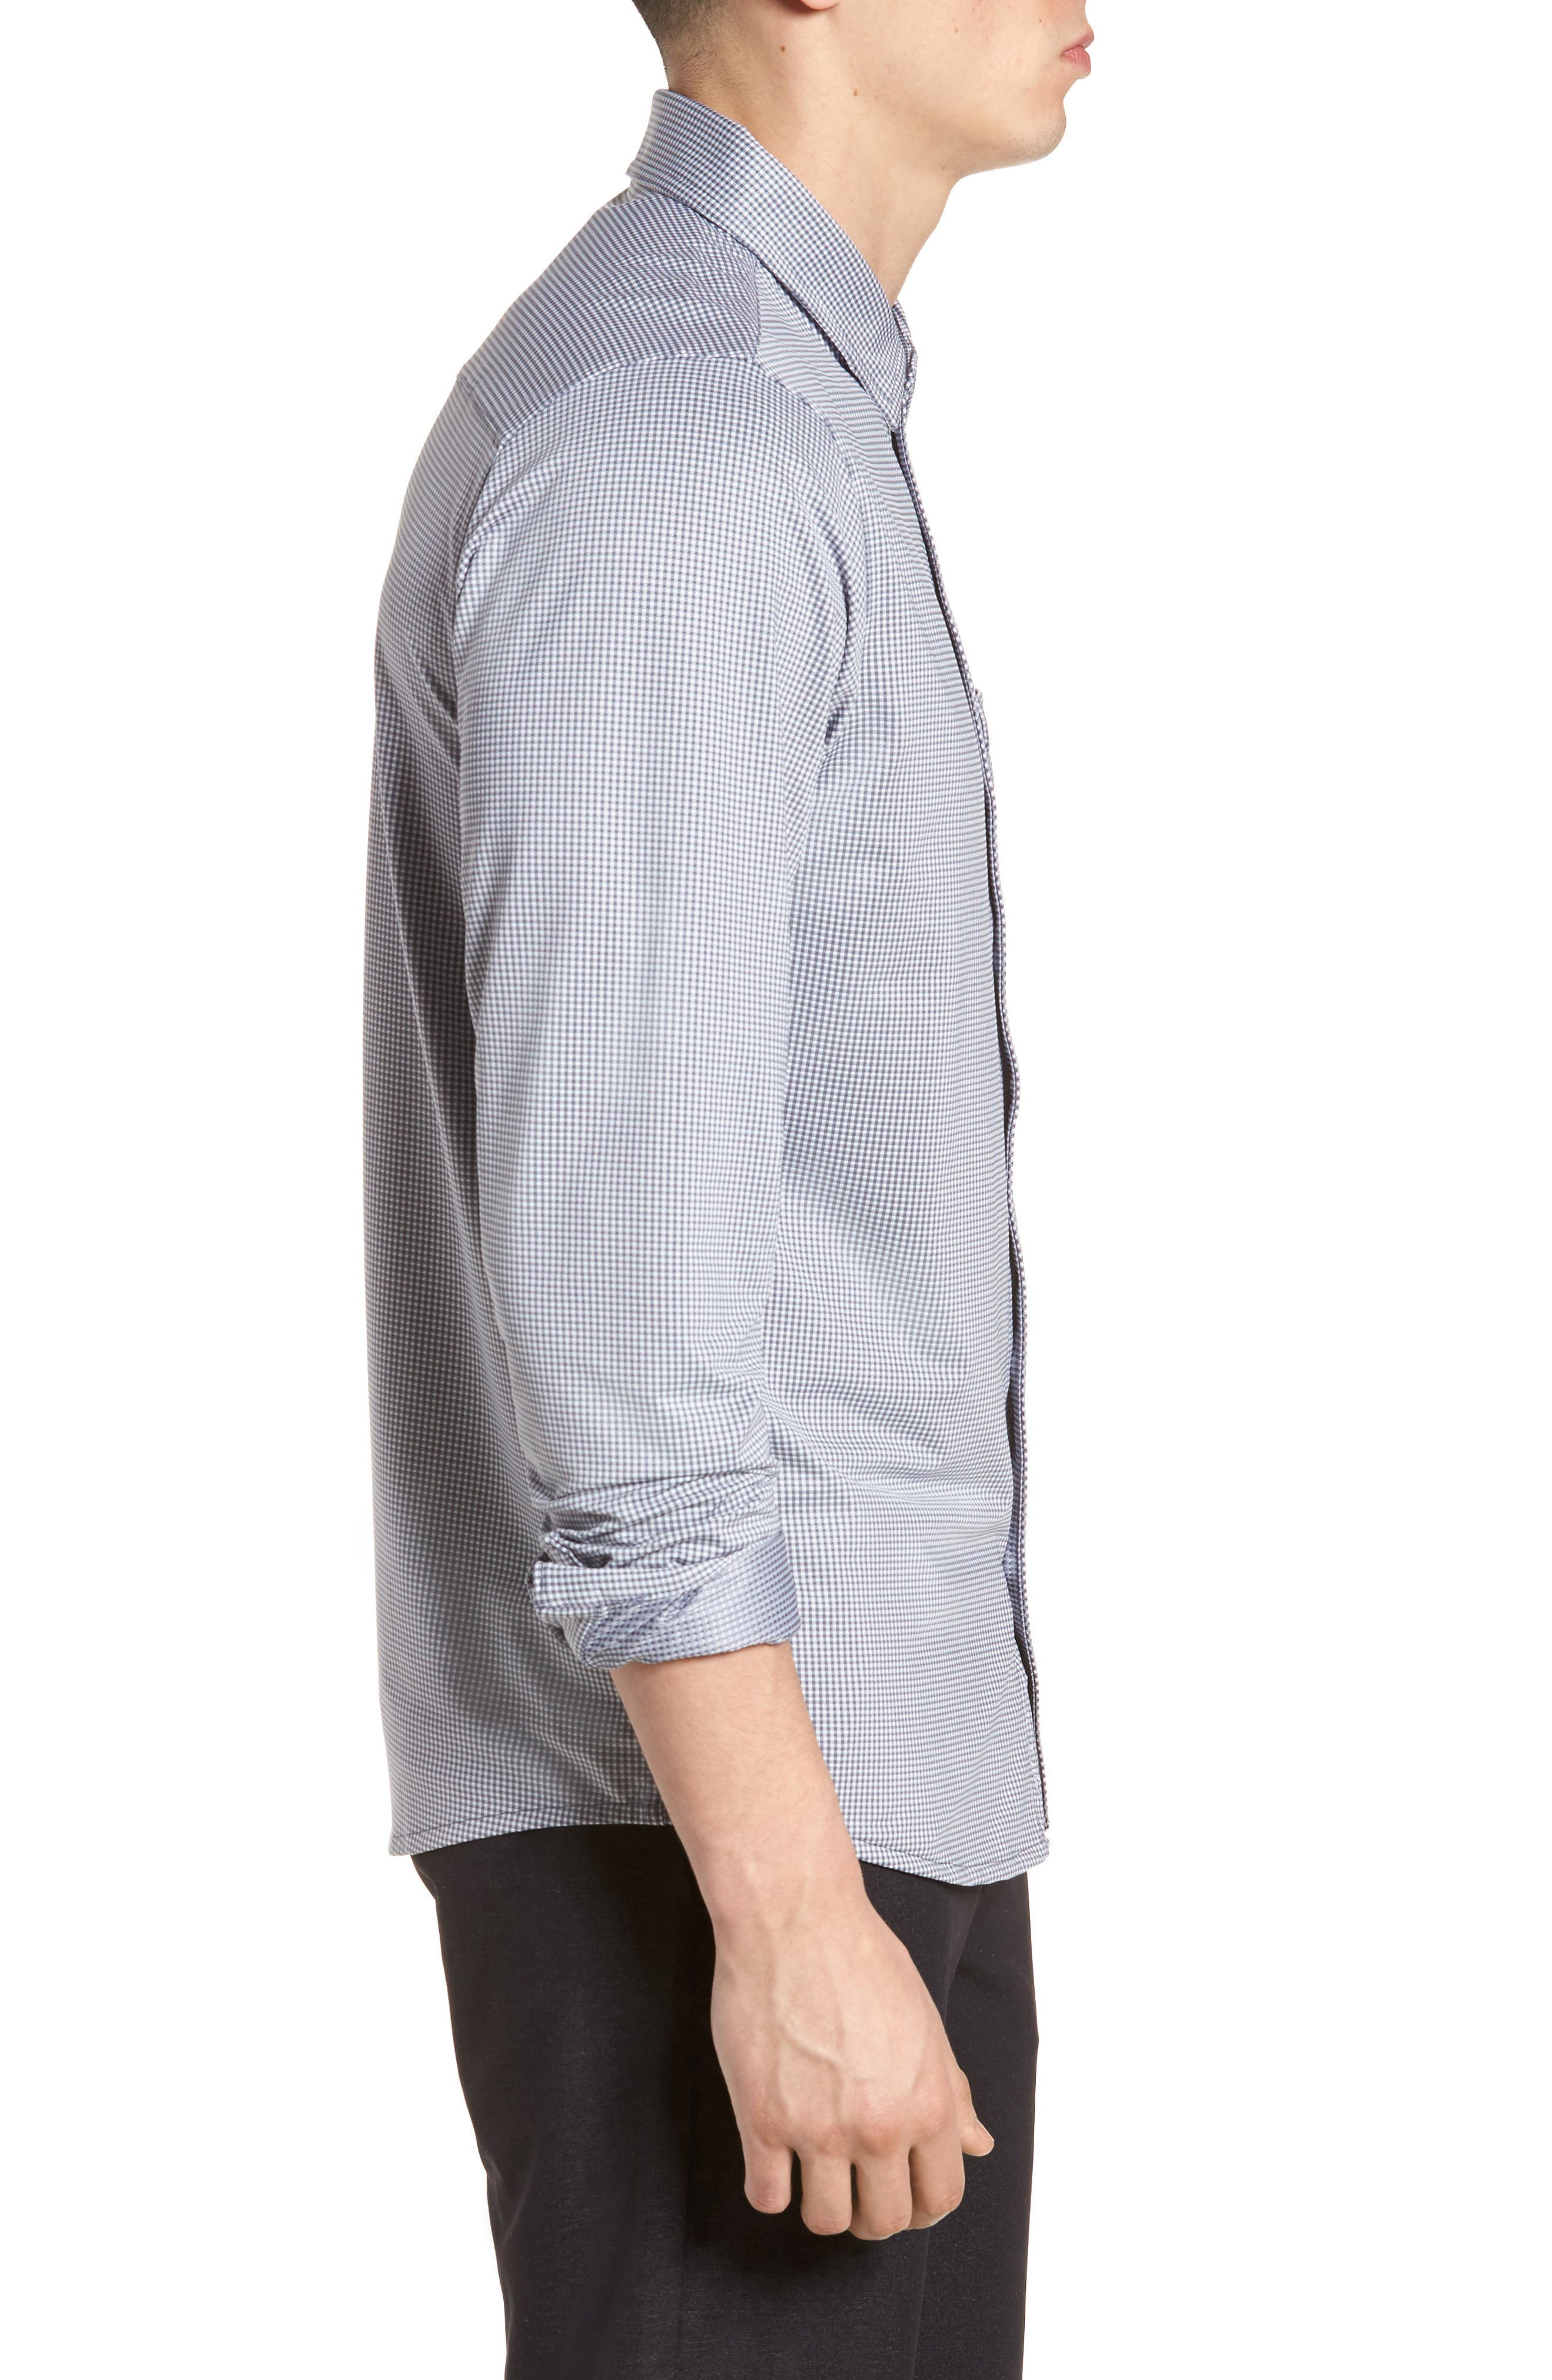 Couig Gingham Sport Shirt,                             Alternate thumbnail 4, color,                             White/ Grisaille